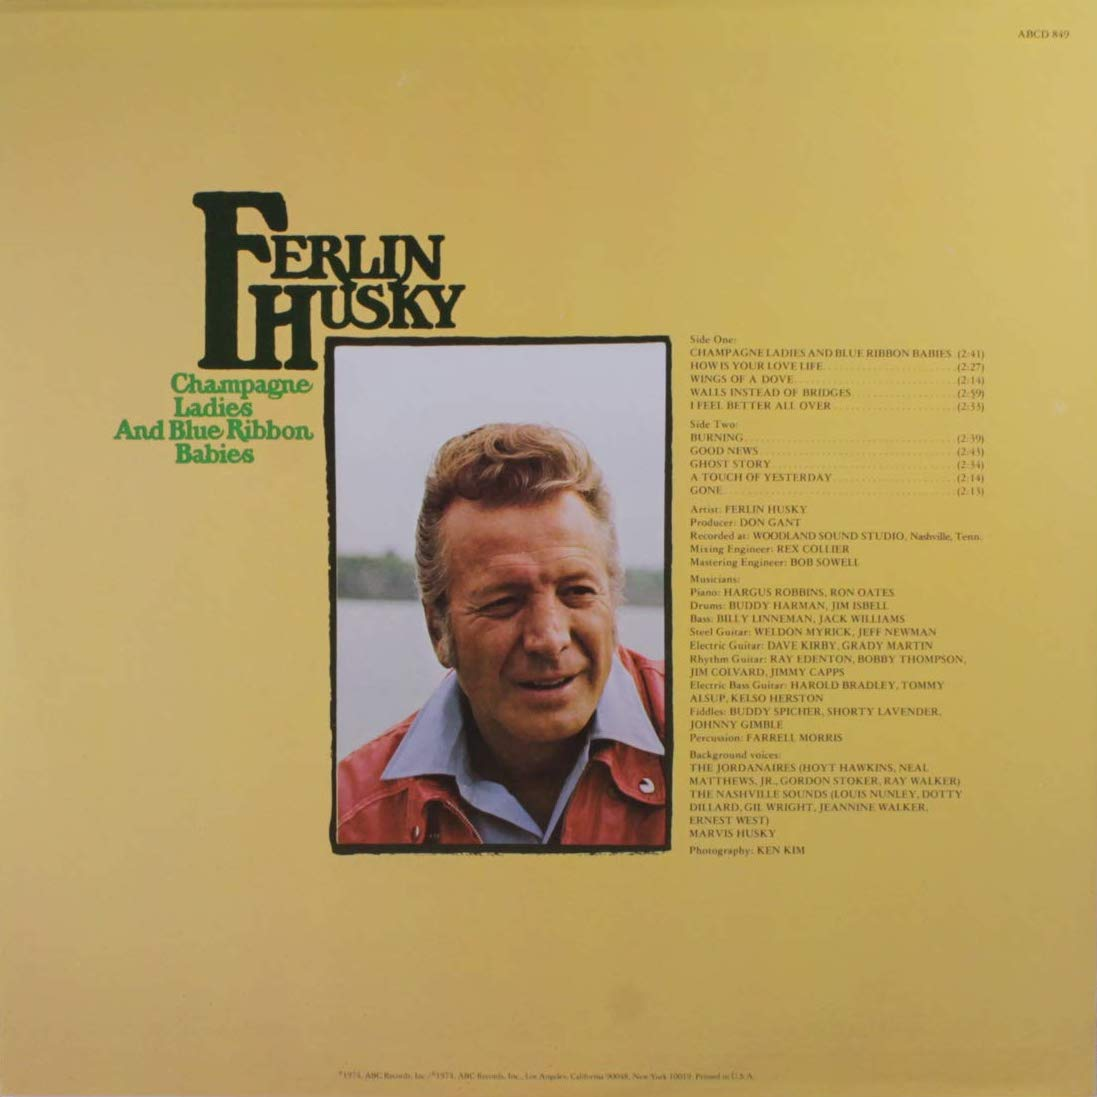 Ferlin Husky Champagne Ladies and Blue Ribbon Babies LP